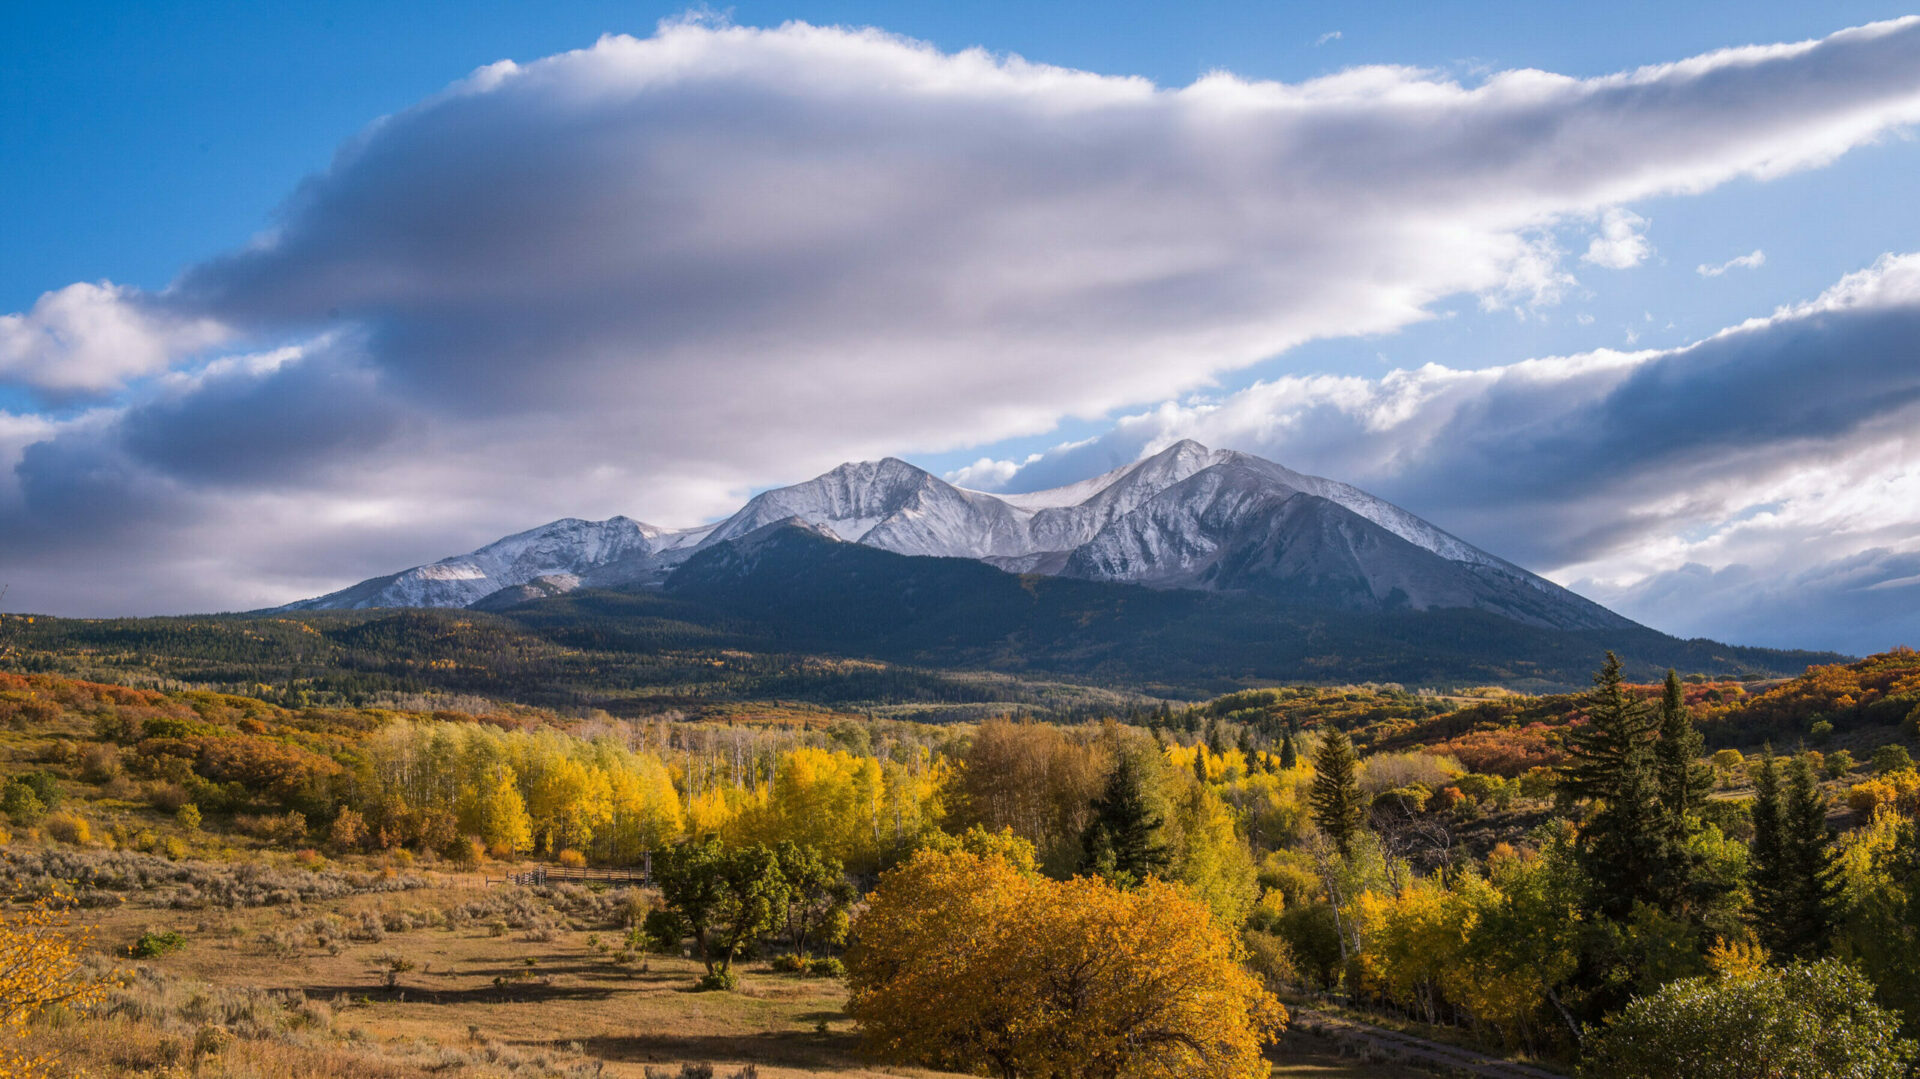 Johnston Van Arsdale Martin JVAM is a mountain law firm founded by Benjamin Johnston, Lucas Van Arsdale, and Casey Martin. JVAM servers the Roaring Fork Valley and the Arkansas River Valley with offices in Aspen, Basalt, Carbondale, Glenwood Springs, and Buena Vista Colorado.